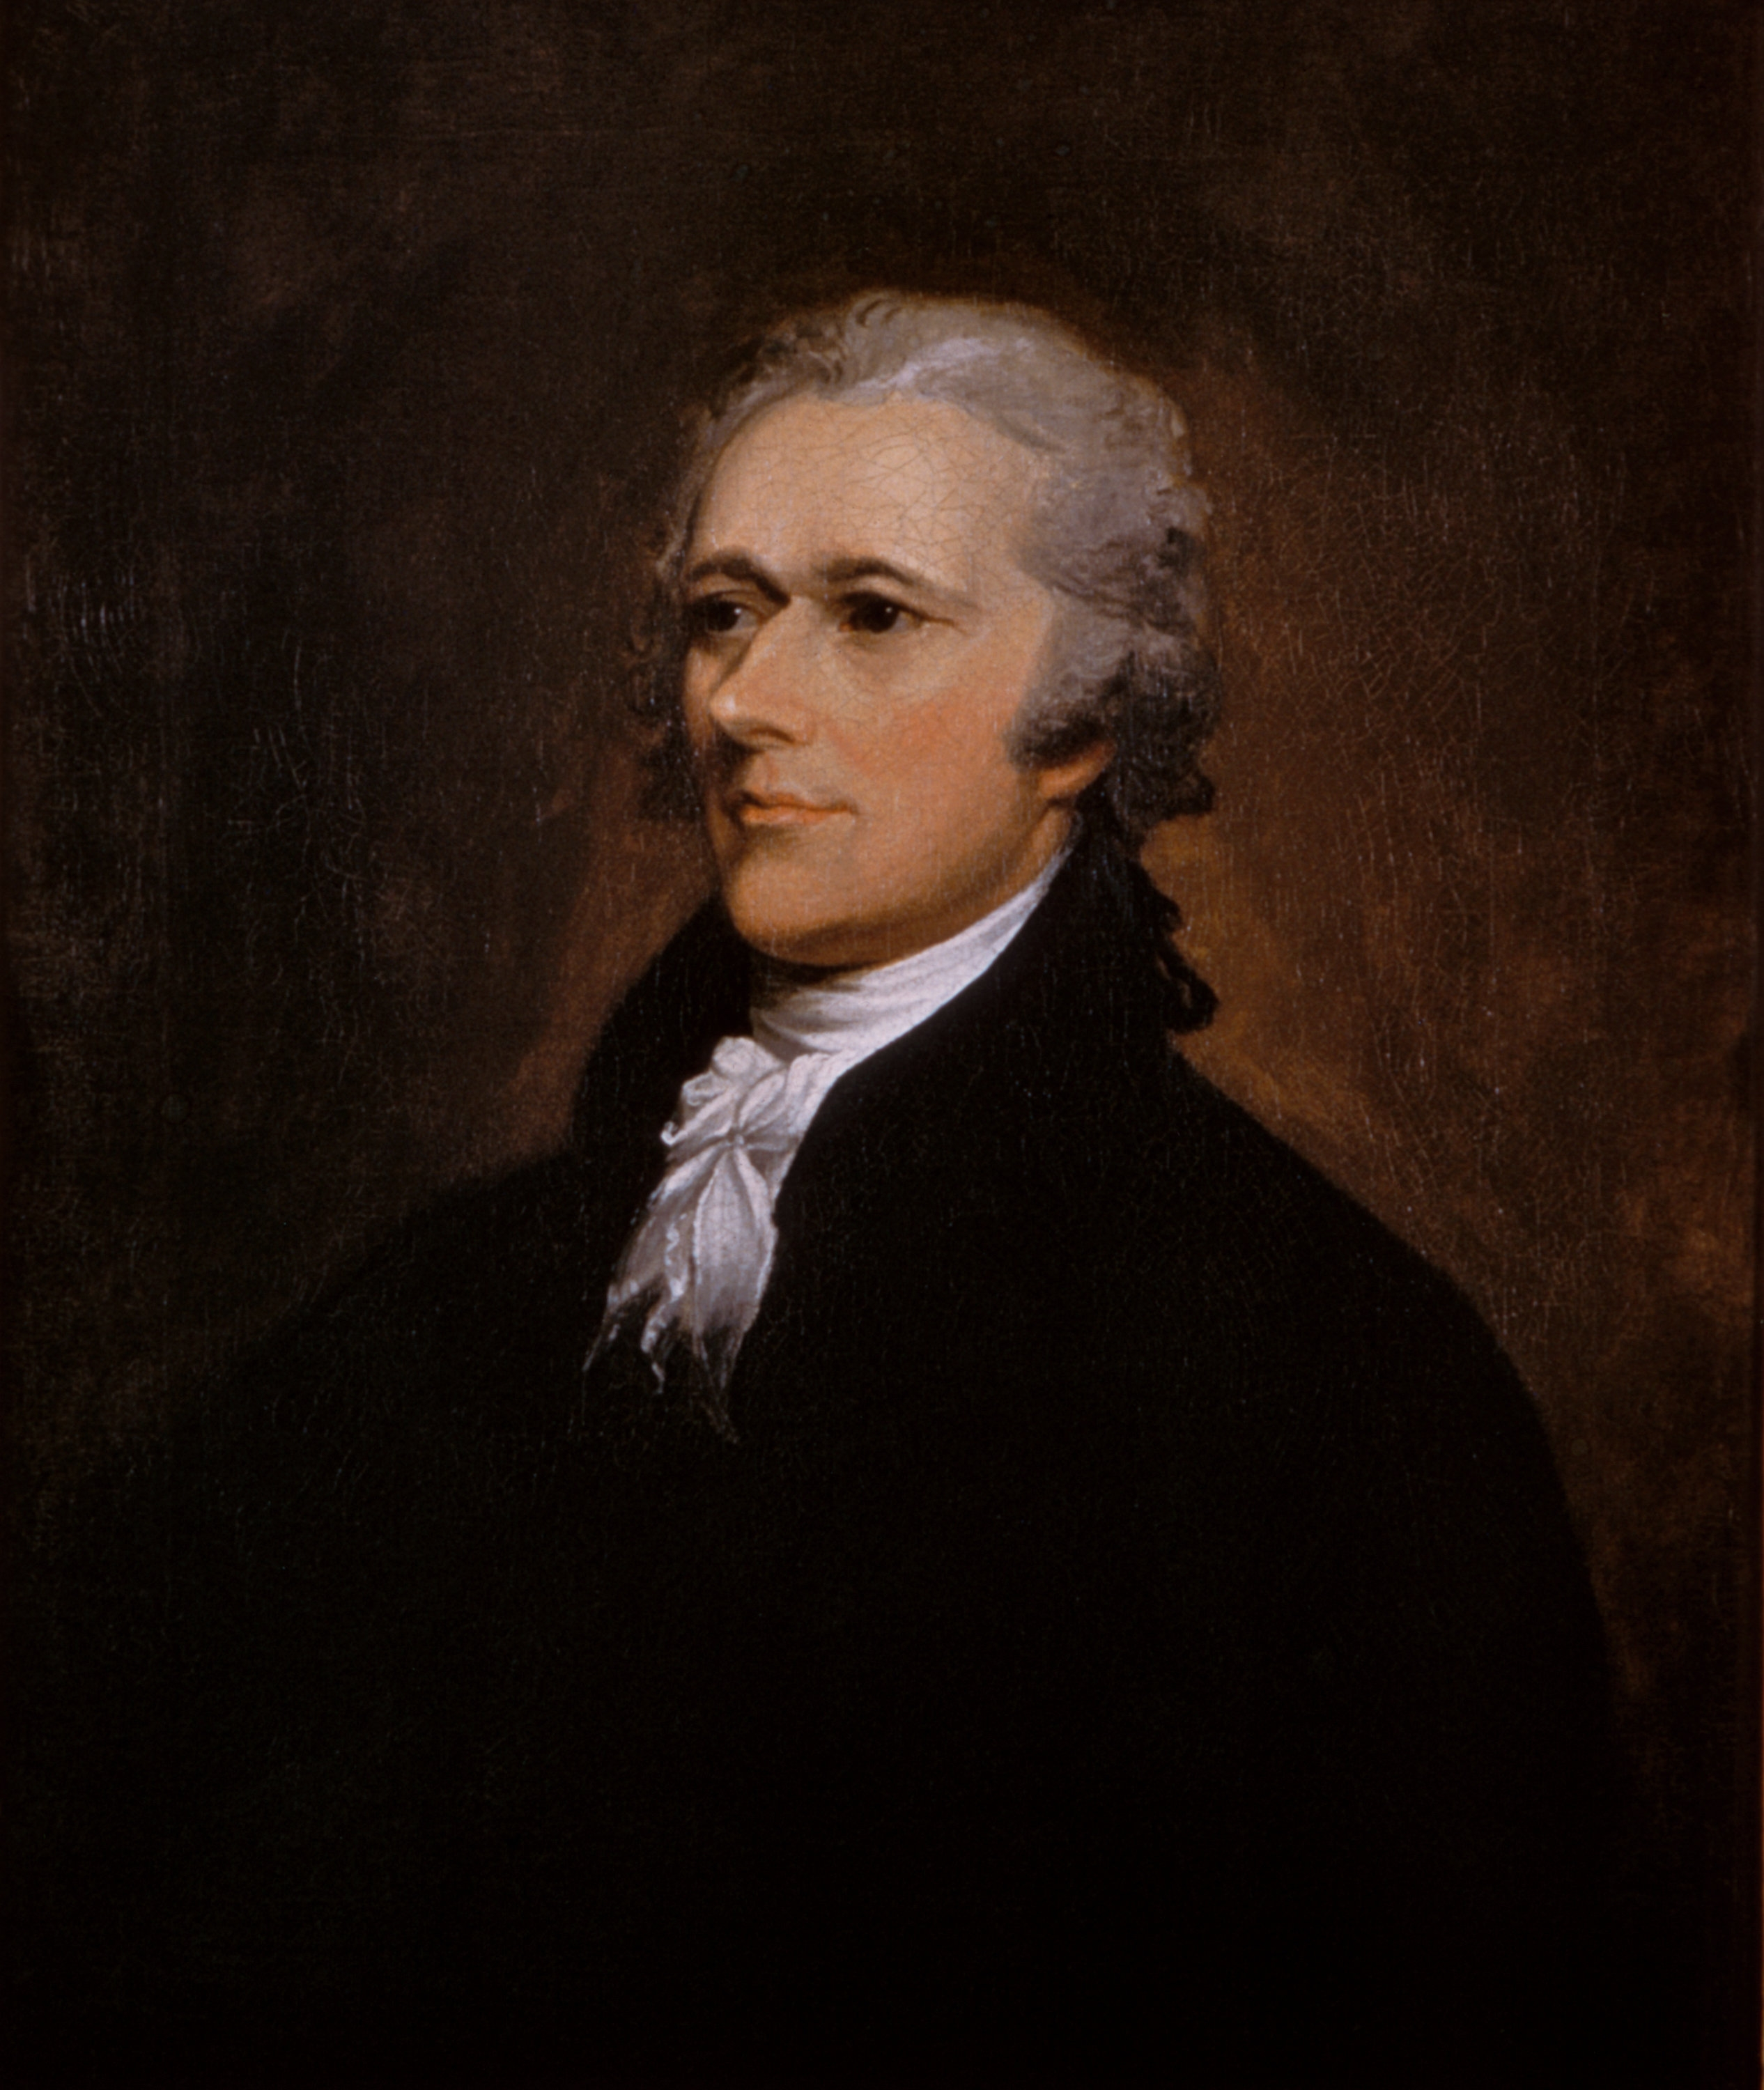 Alexander Hamilton, by John Trumbull, ca. 1806. Andrew W. Mellon Collection [1940.1.8]. Courtesy National Gallery of Art, Washington, D.C.